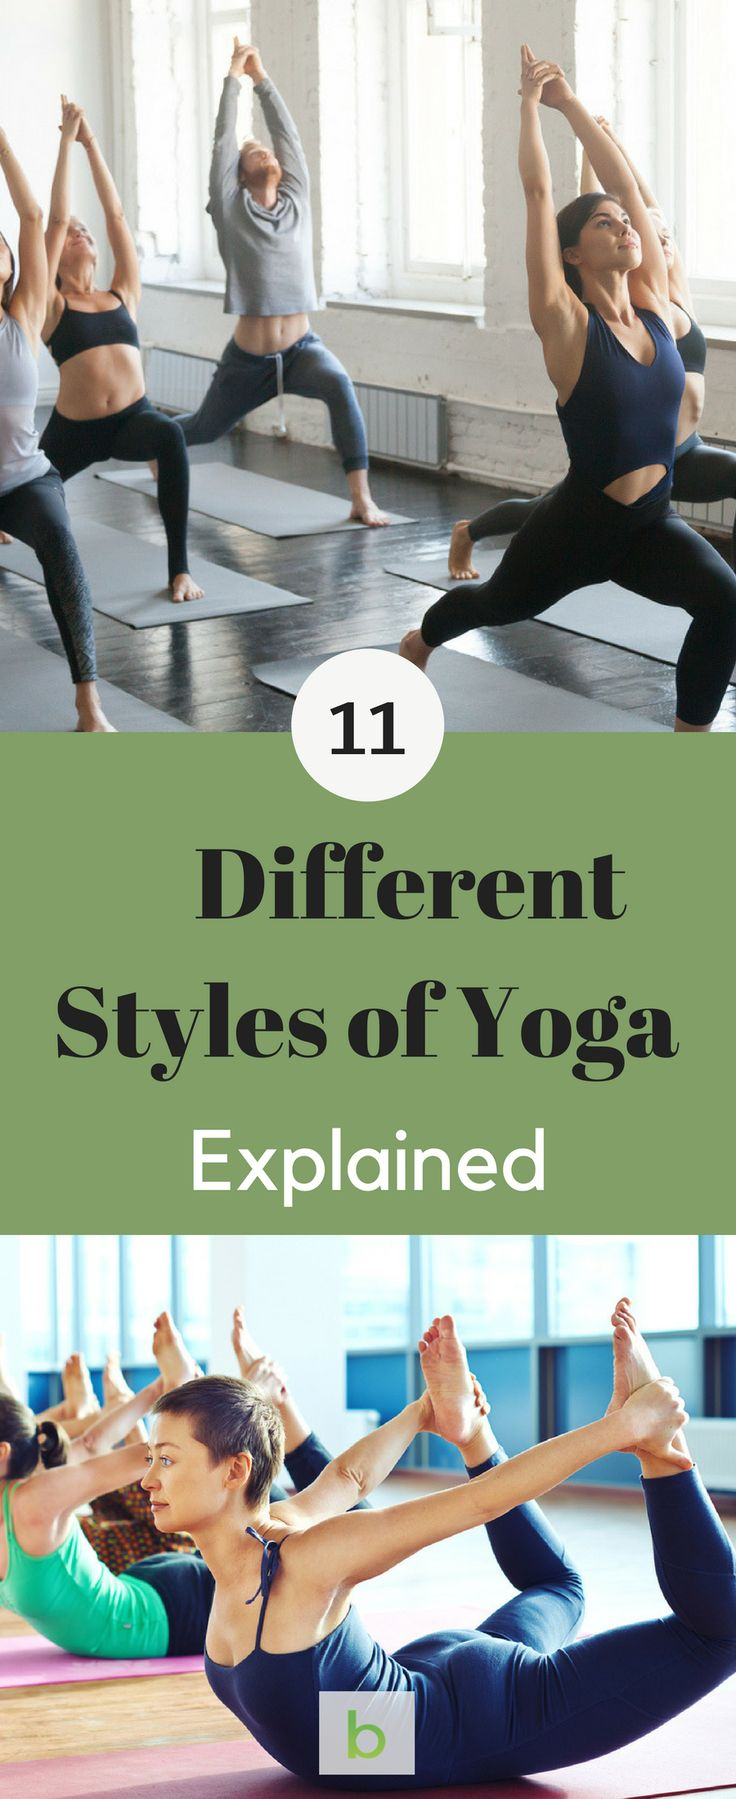 11 Different Yoga Styles- Explained! Ever looked at a yoga class schedule and been confused? What do all the different styles mean? There's a yoga style that's right for everybody. We've broken it down so you can find the class that's perfect for you. Read and learn more..and Pin for future reference. #beenke